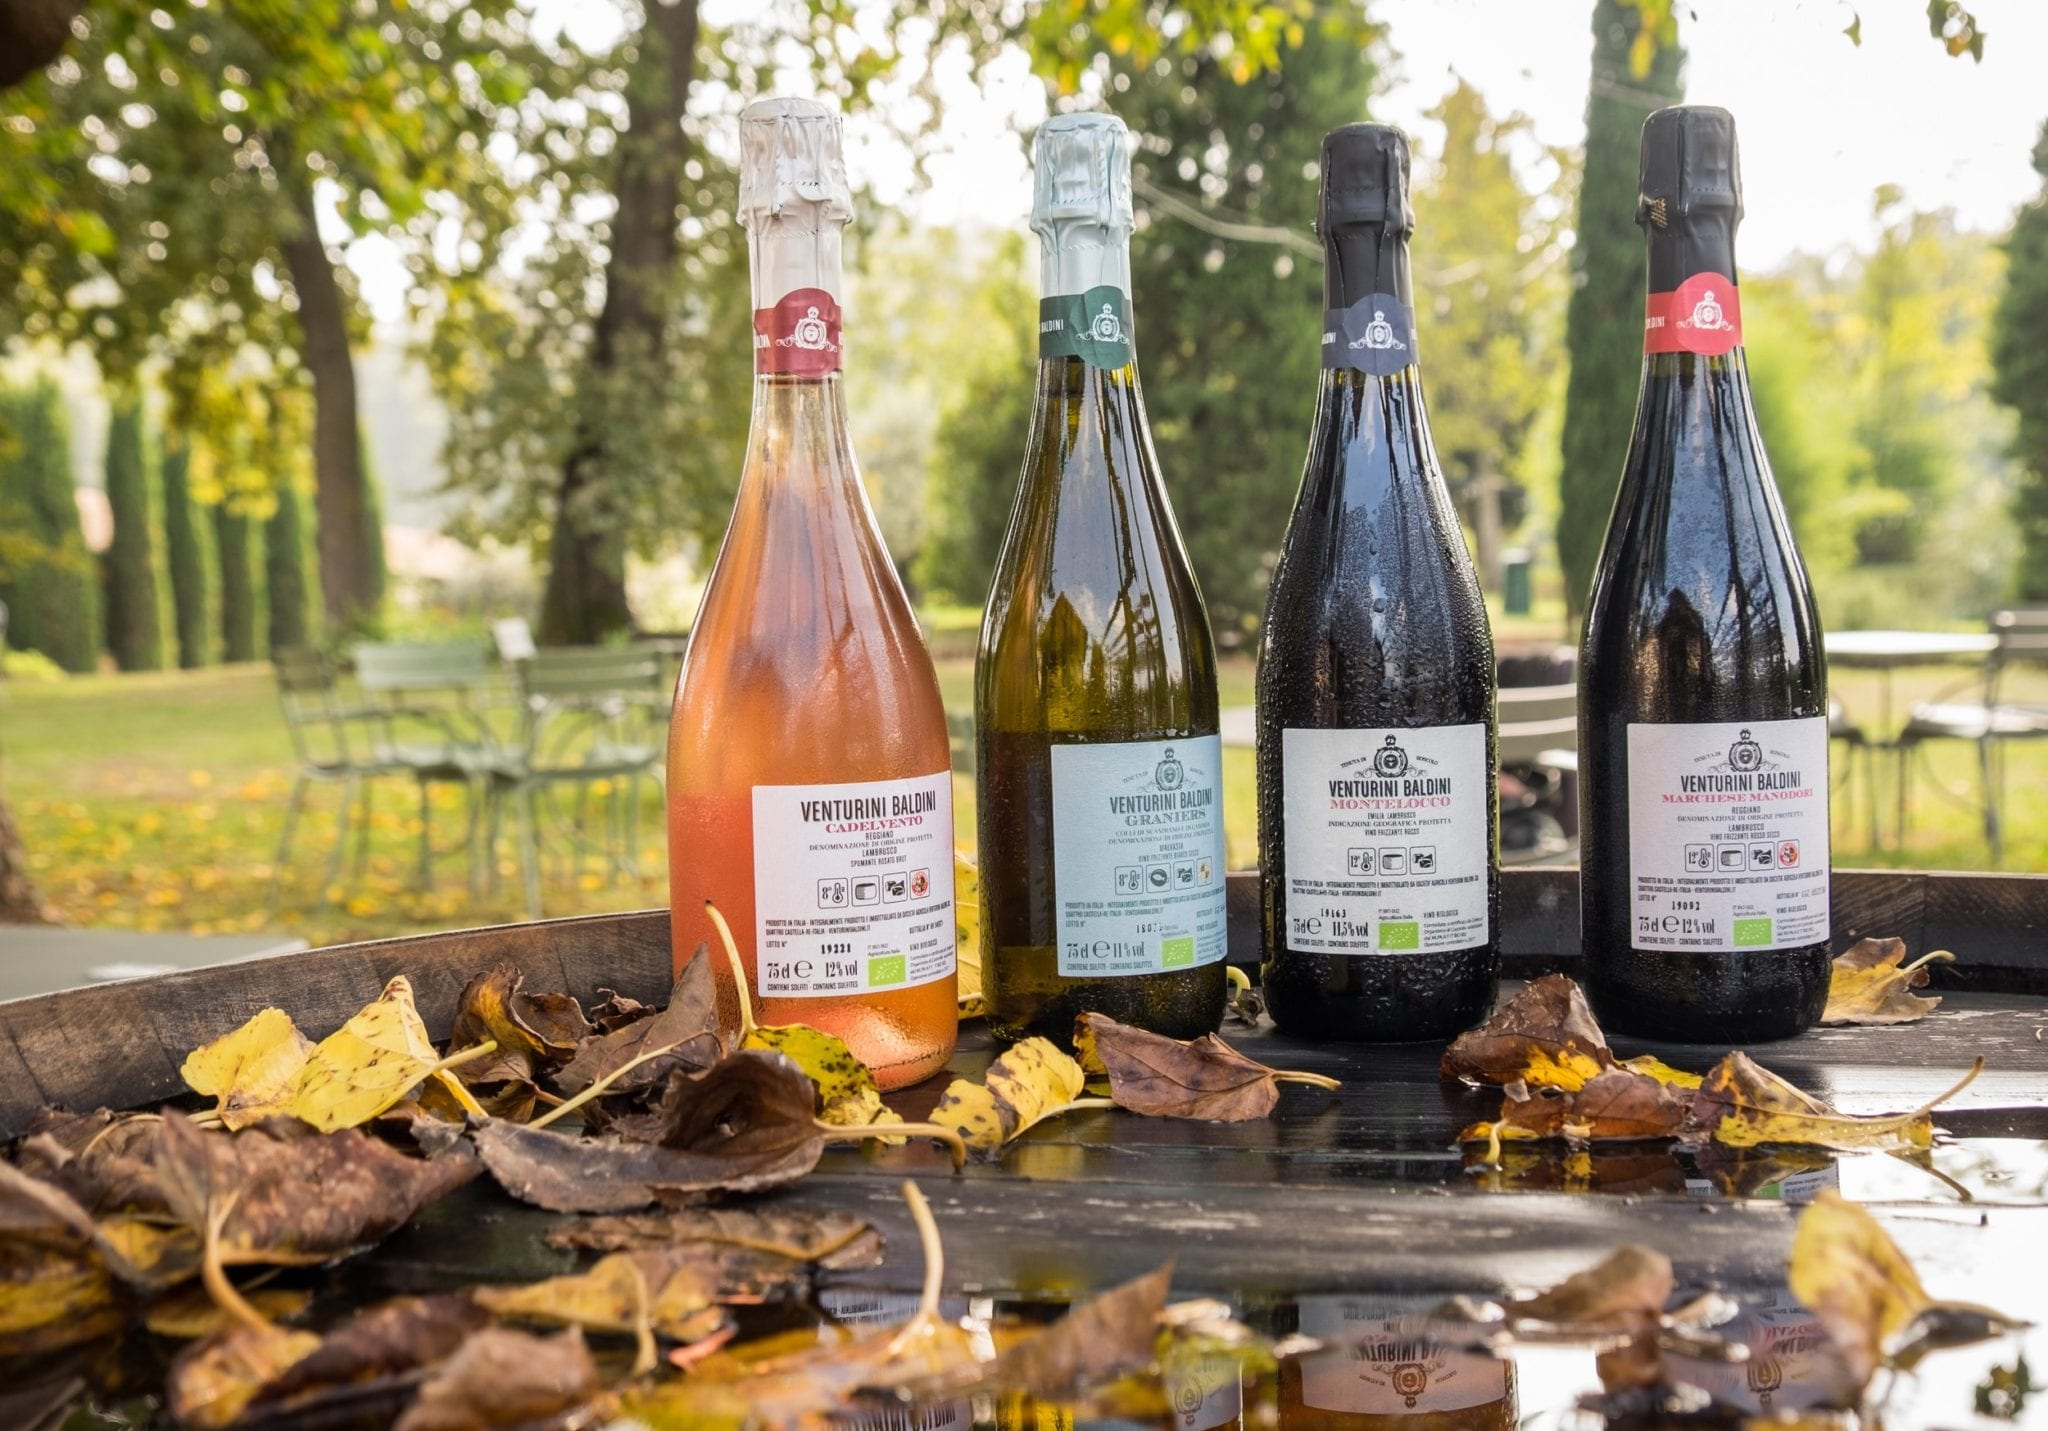 Four wine bottles (one rose, one white, two red) resting on a bottle surrounded by brown leaves, greenery in the background.